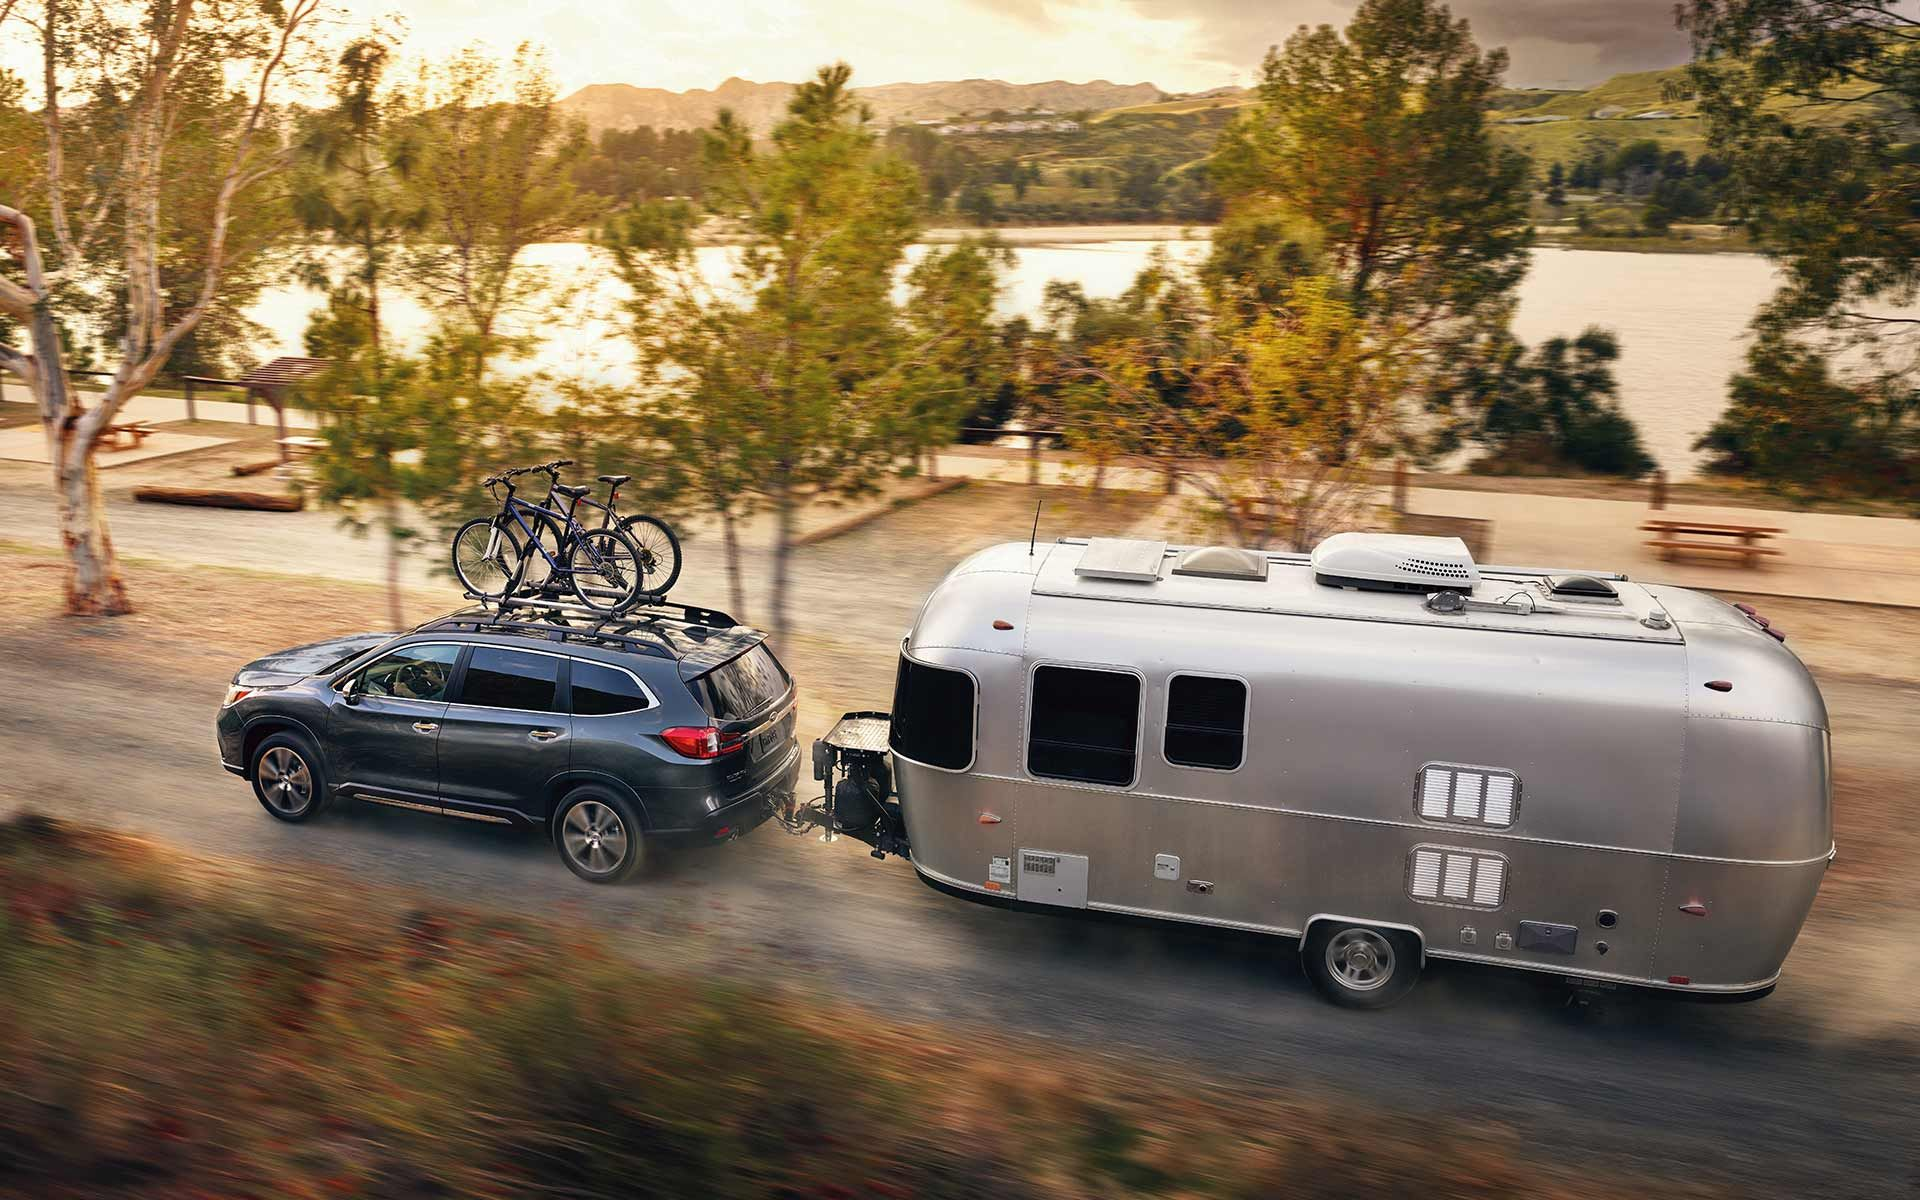 An Ascent Towing A Trailer Recreational Vehicles Subaru Towing